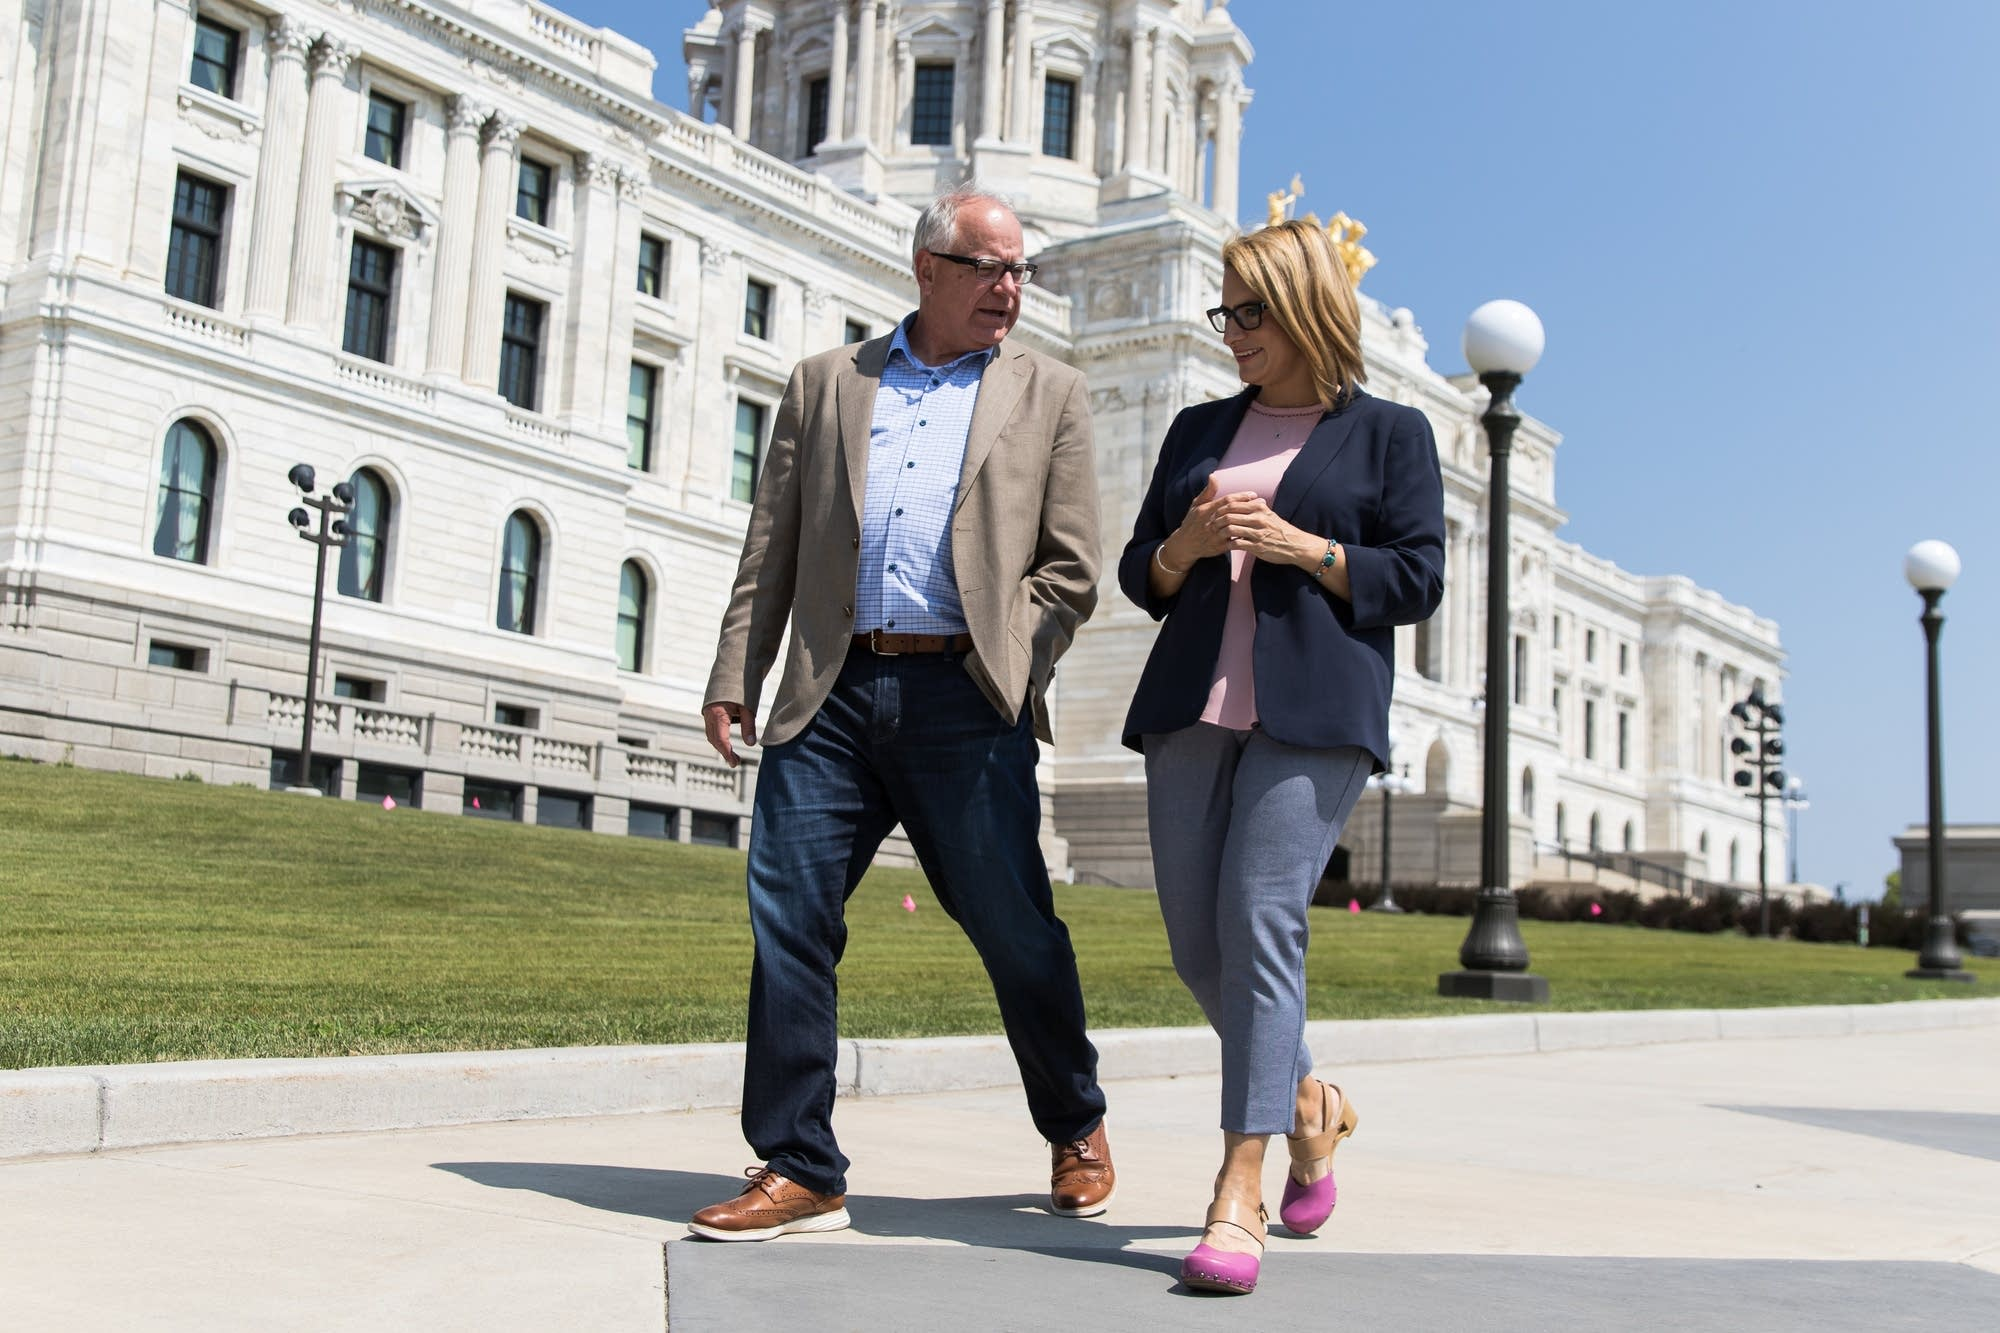 Tim Walz makes his way to the State Office Building with Peggy Flanagan.